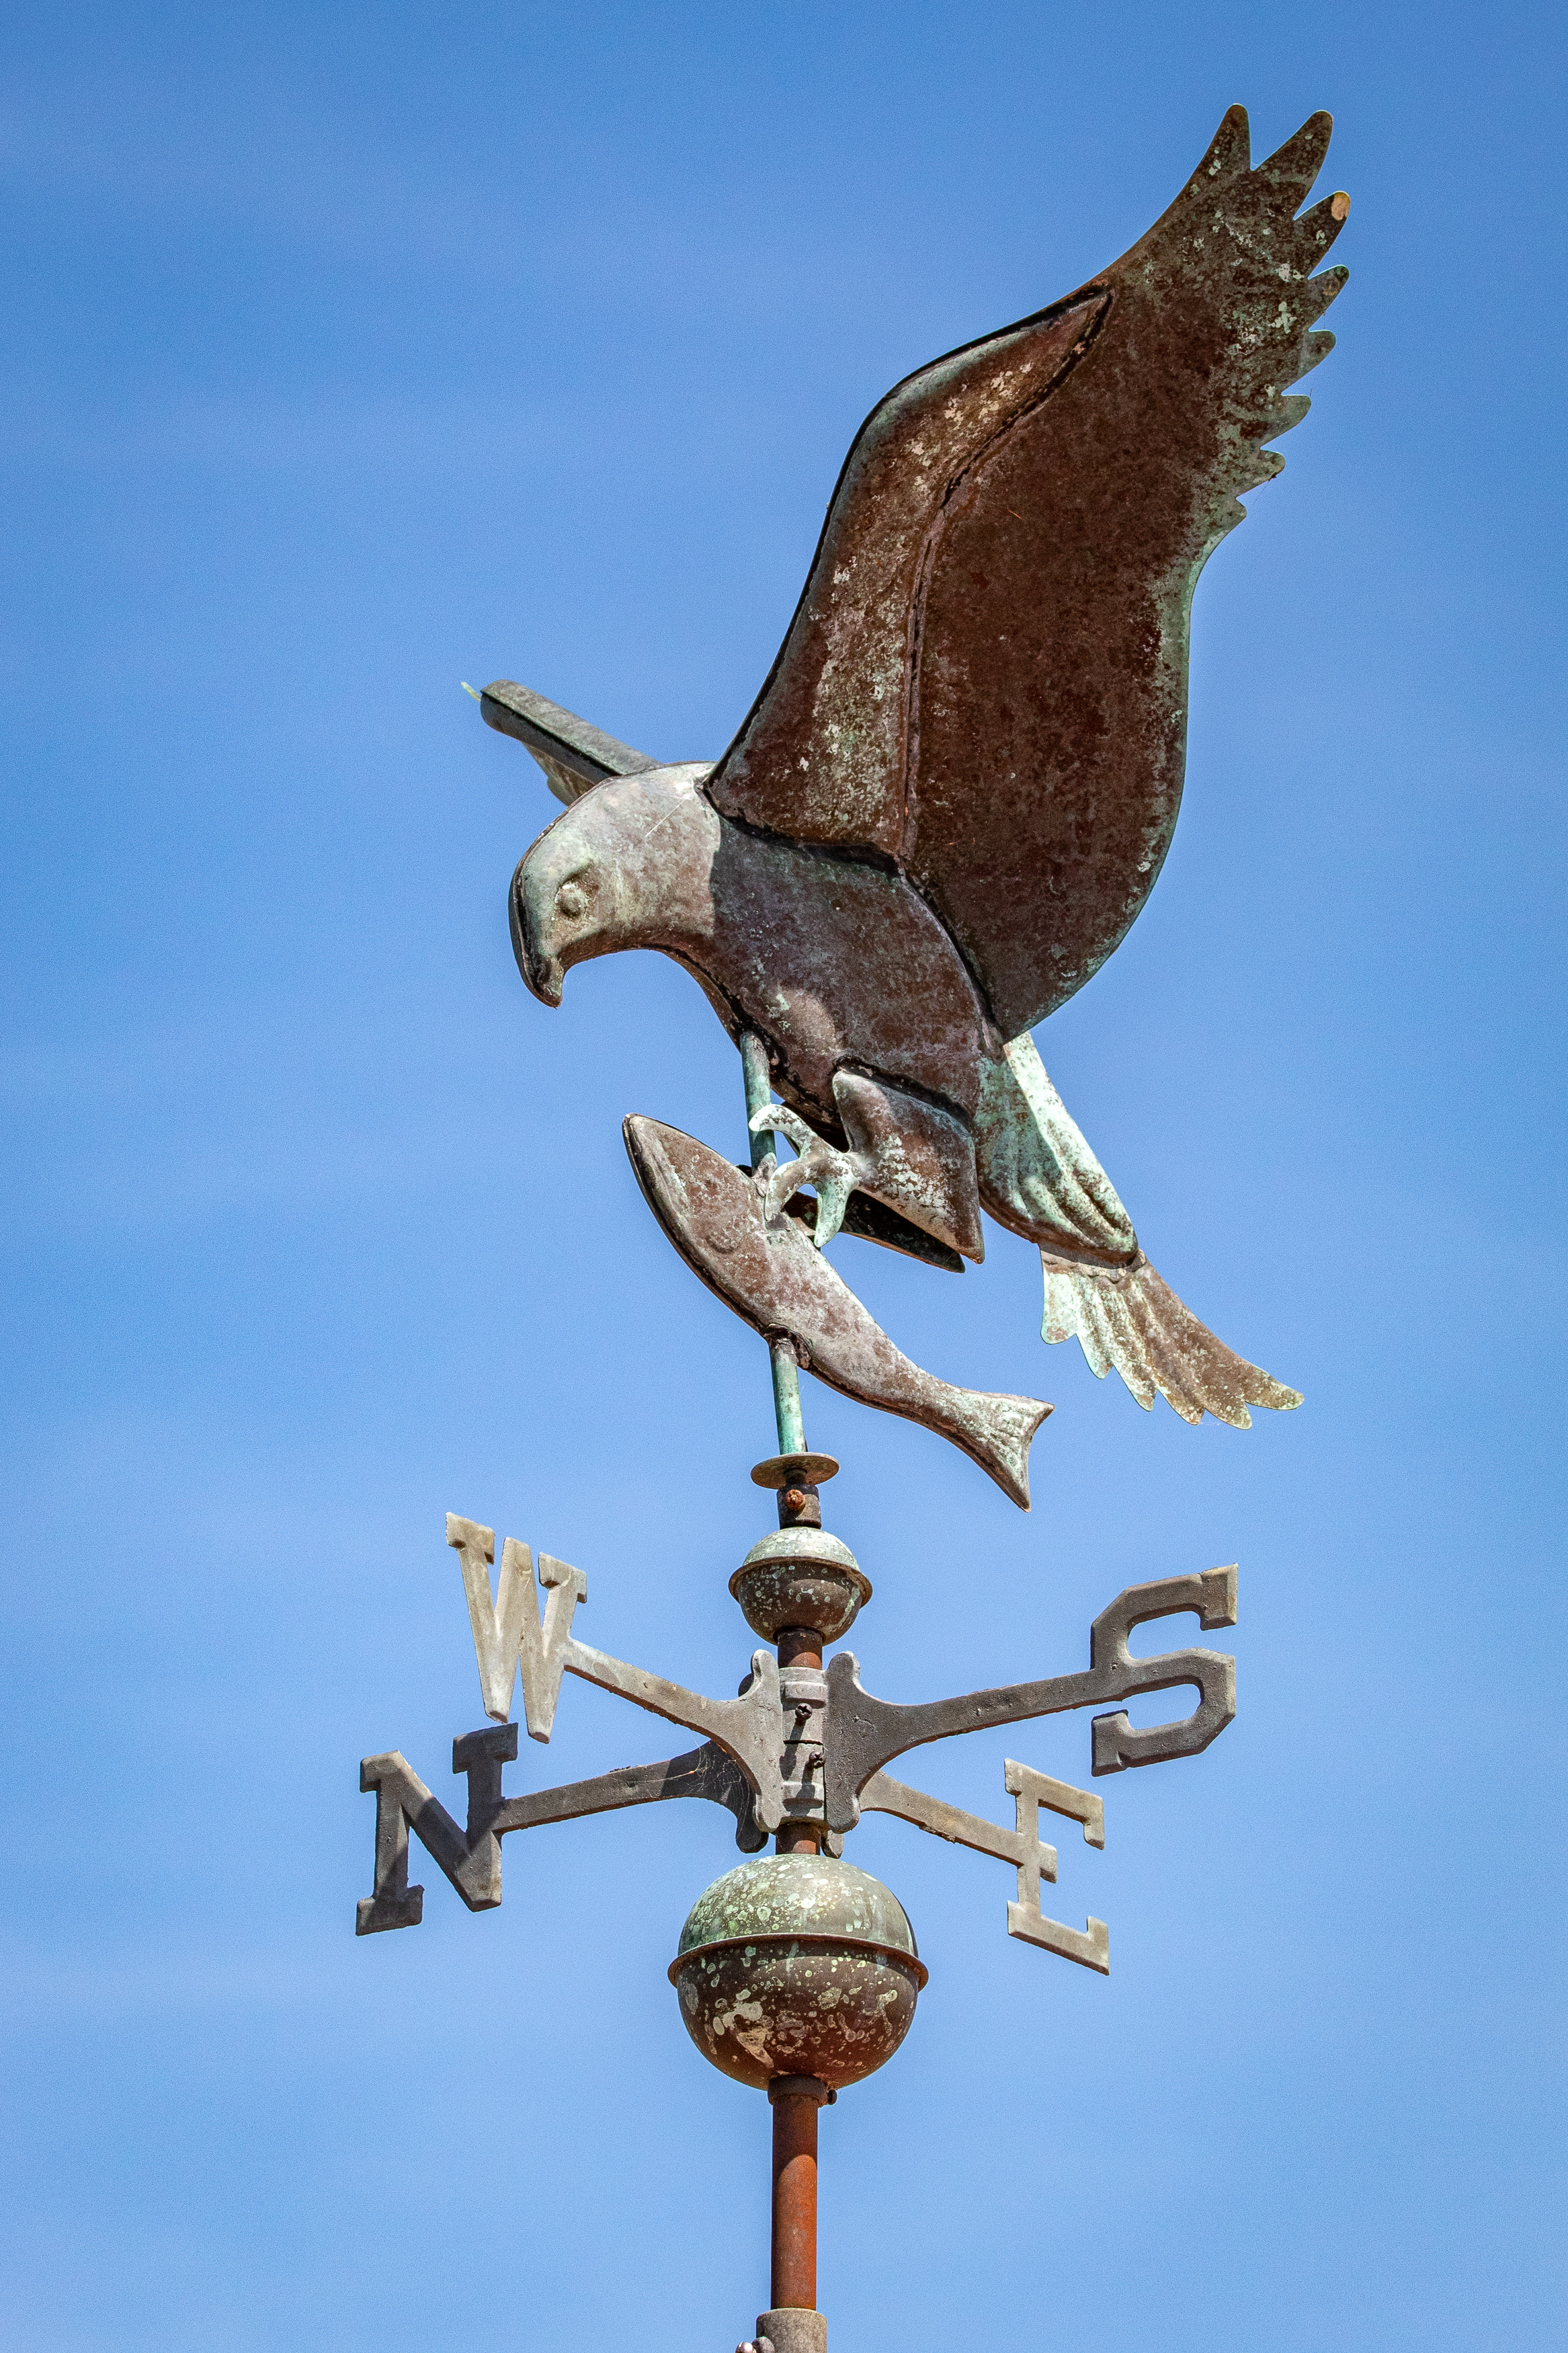 A weather vane on top of a pavilion at the Hatchie National Wildlife Refuge.